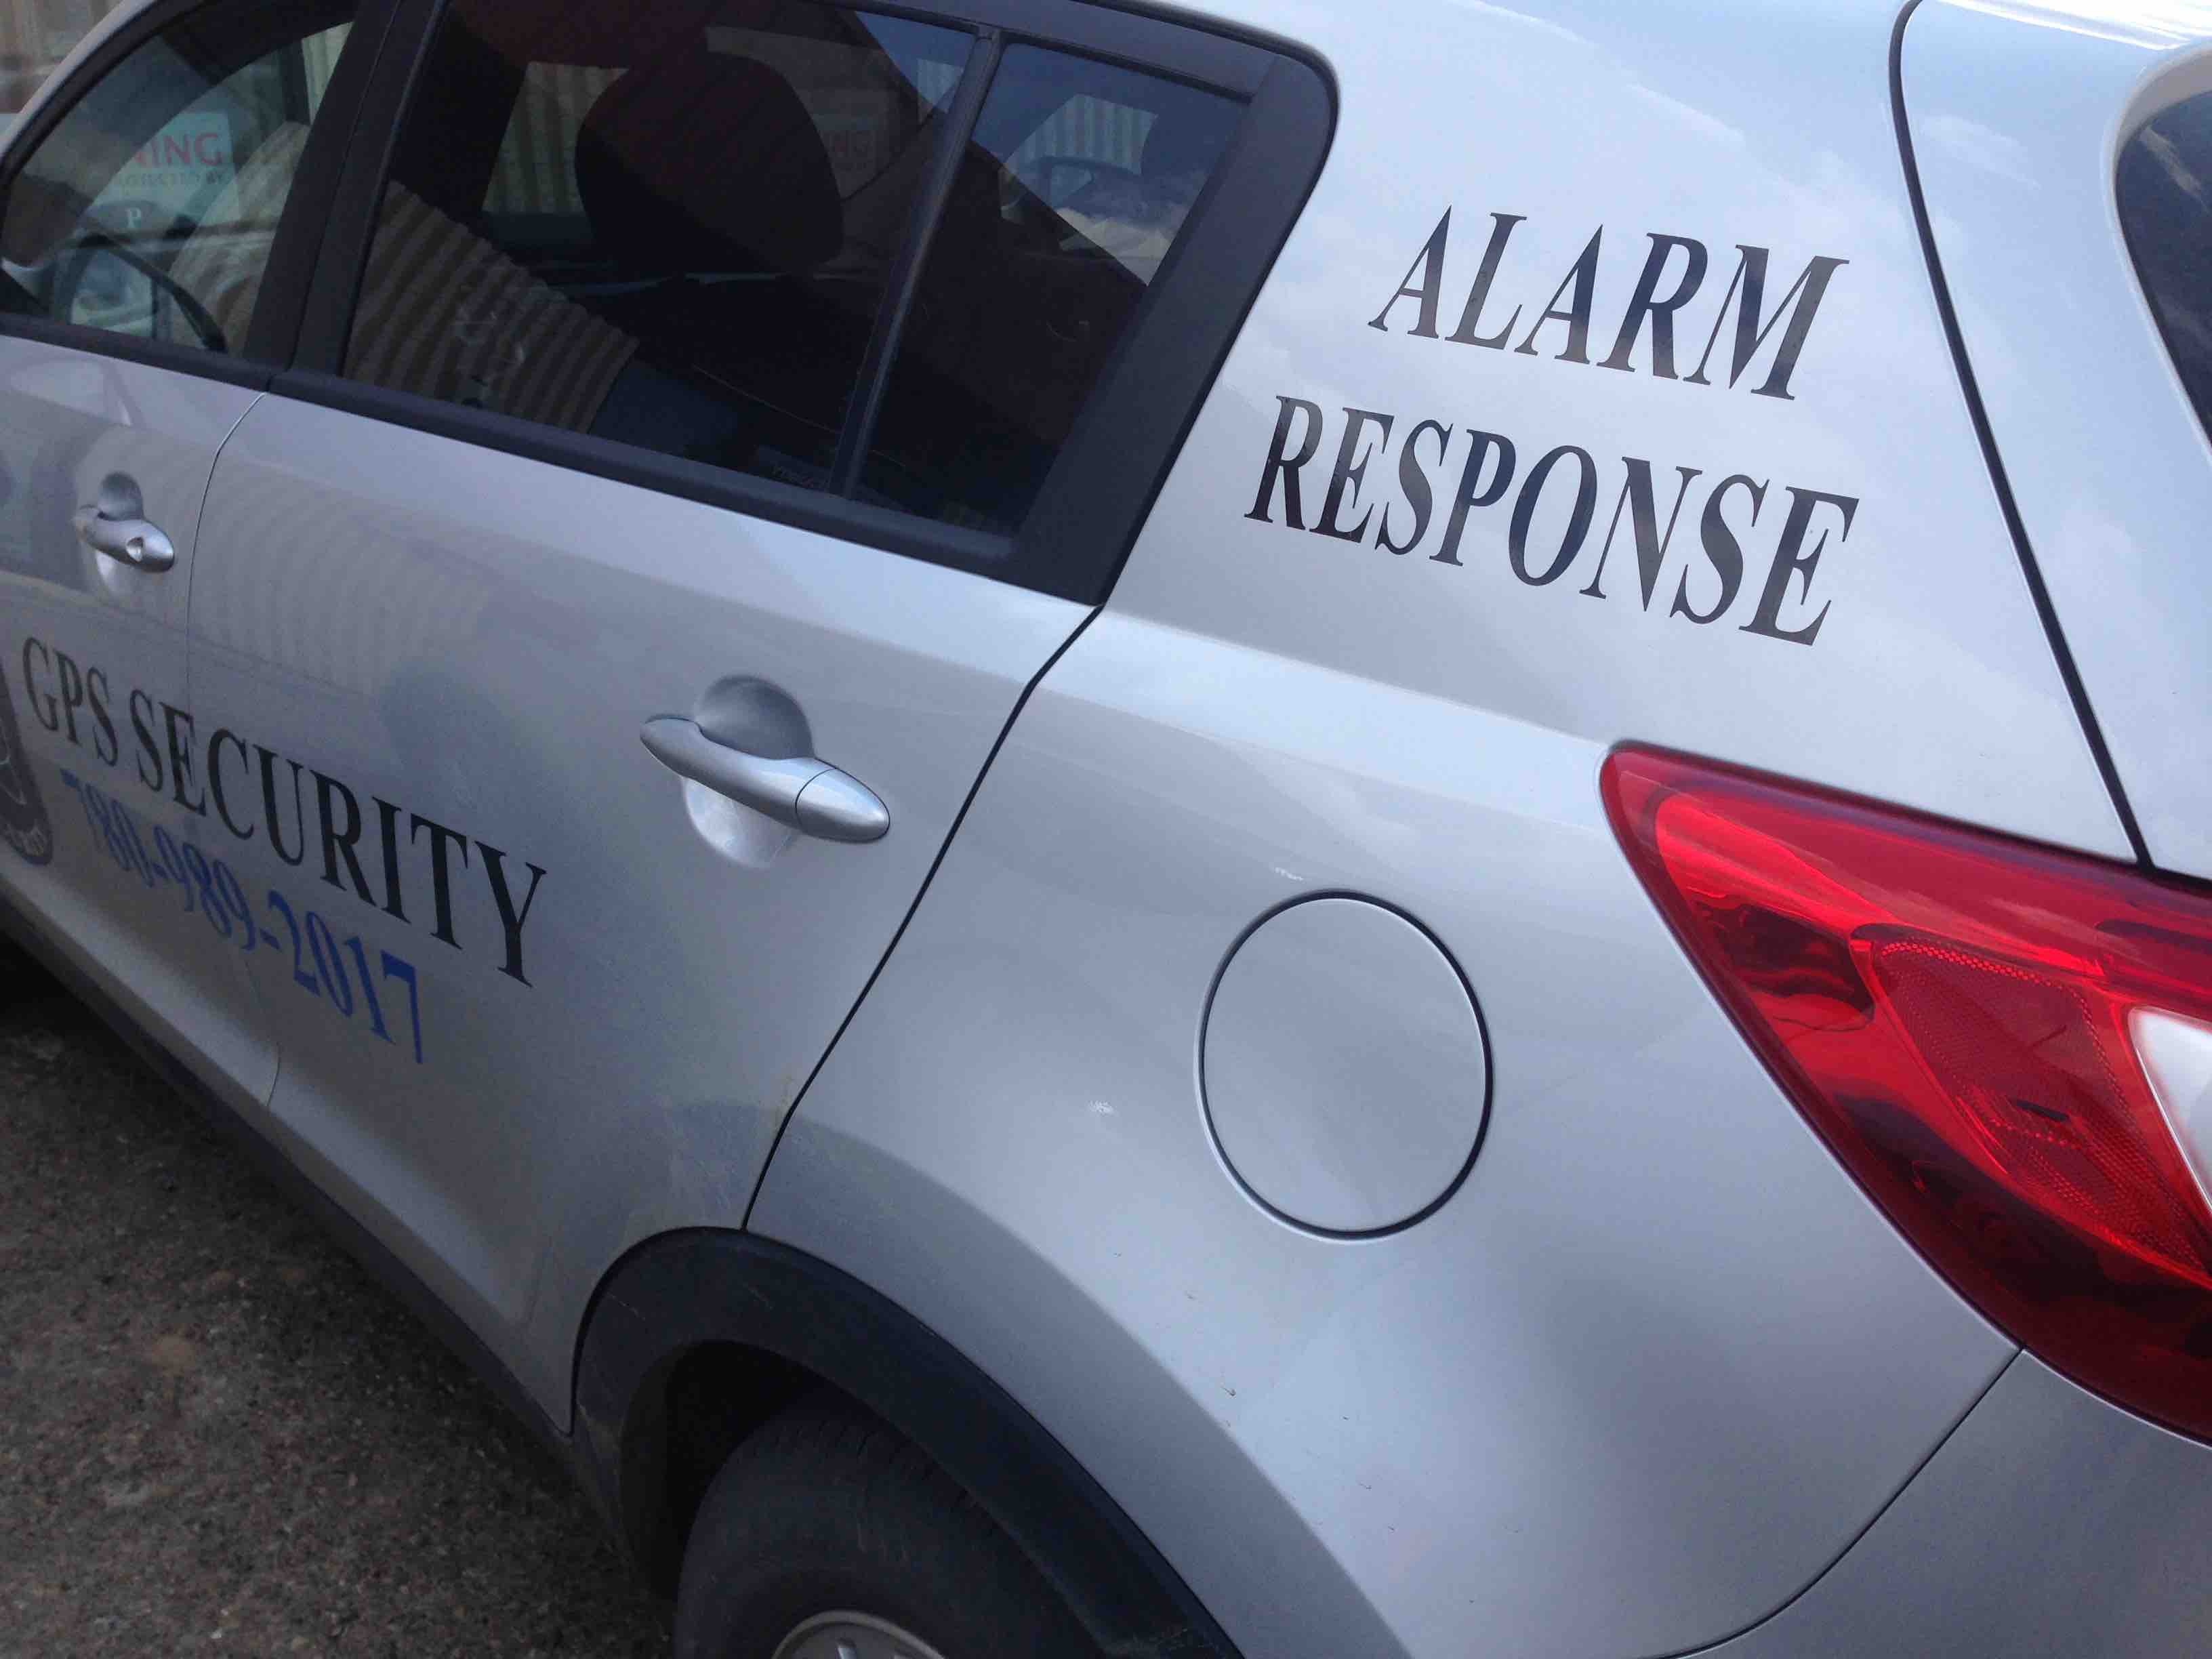 Security Alarm Response